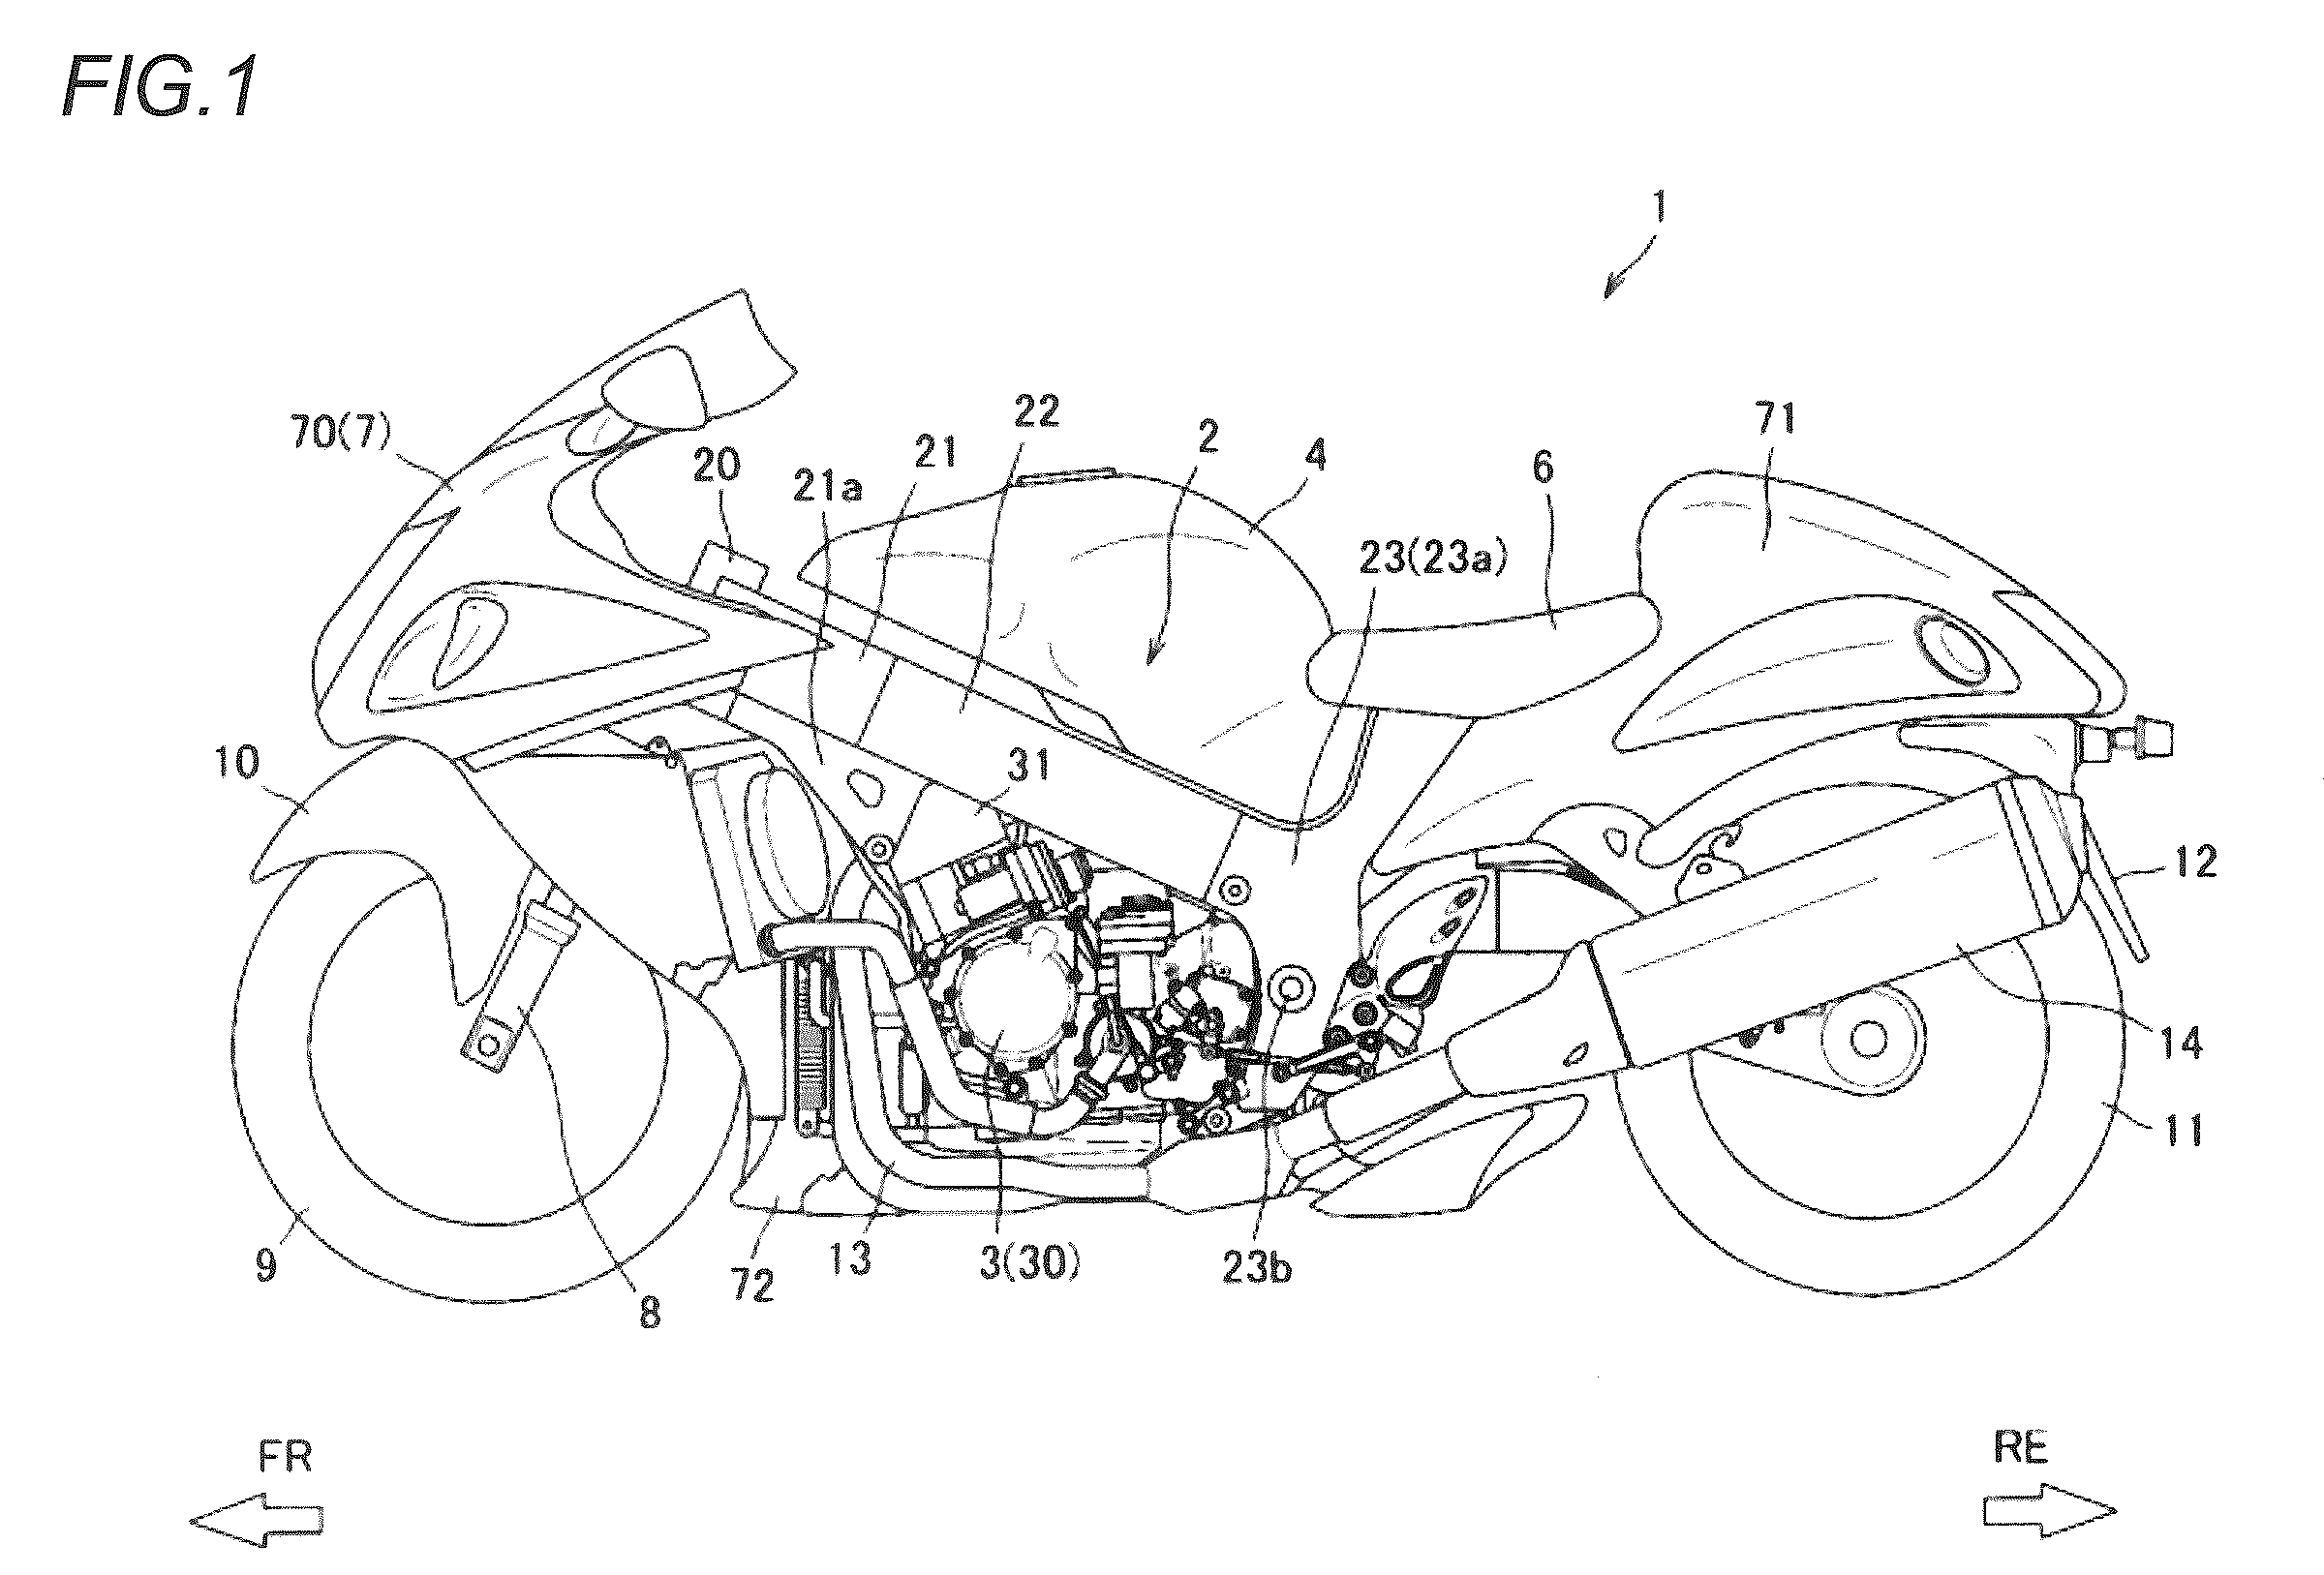 Suzuki Patents Suggest Semi-Automatic Hayabusa